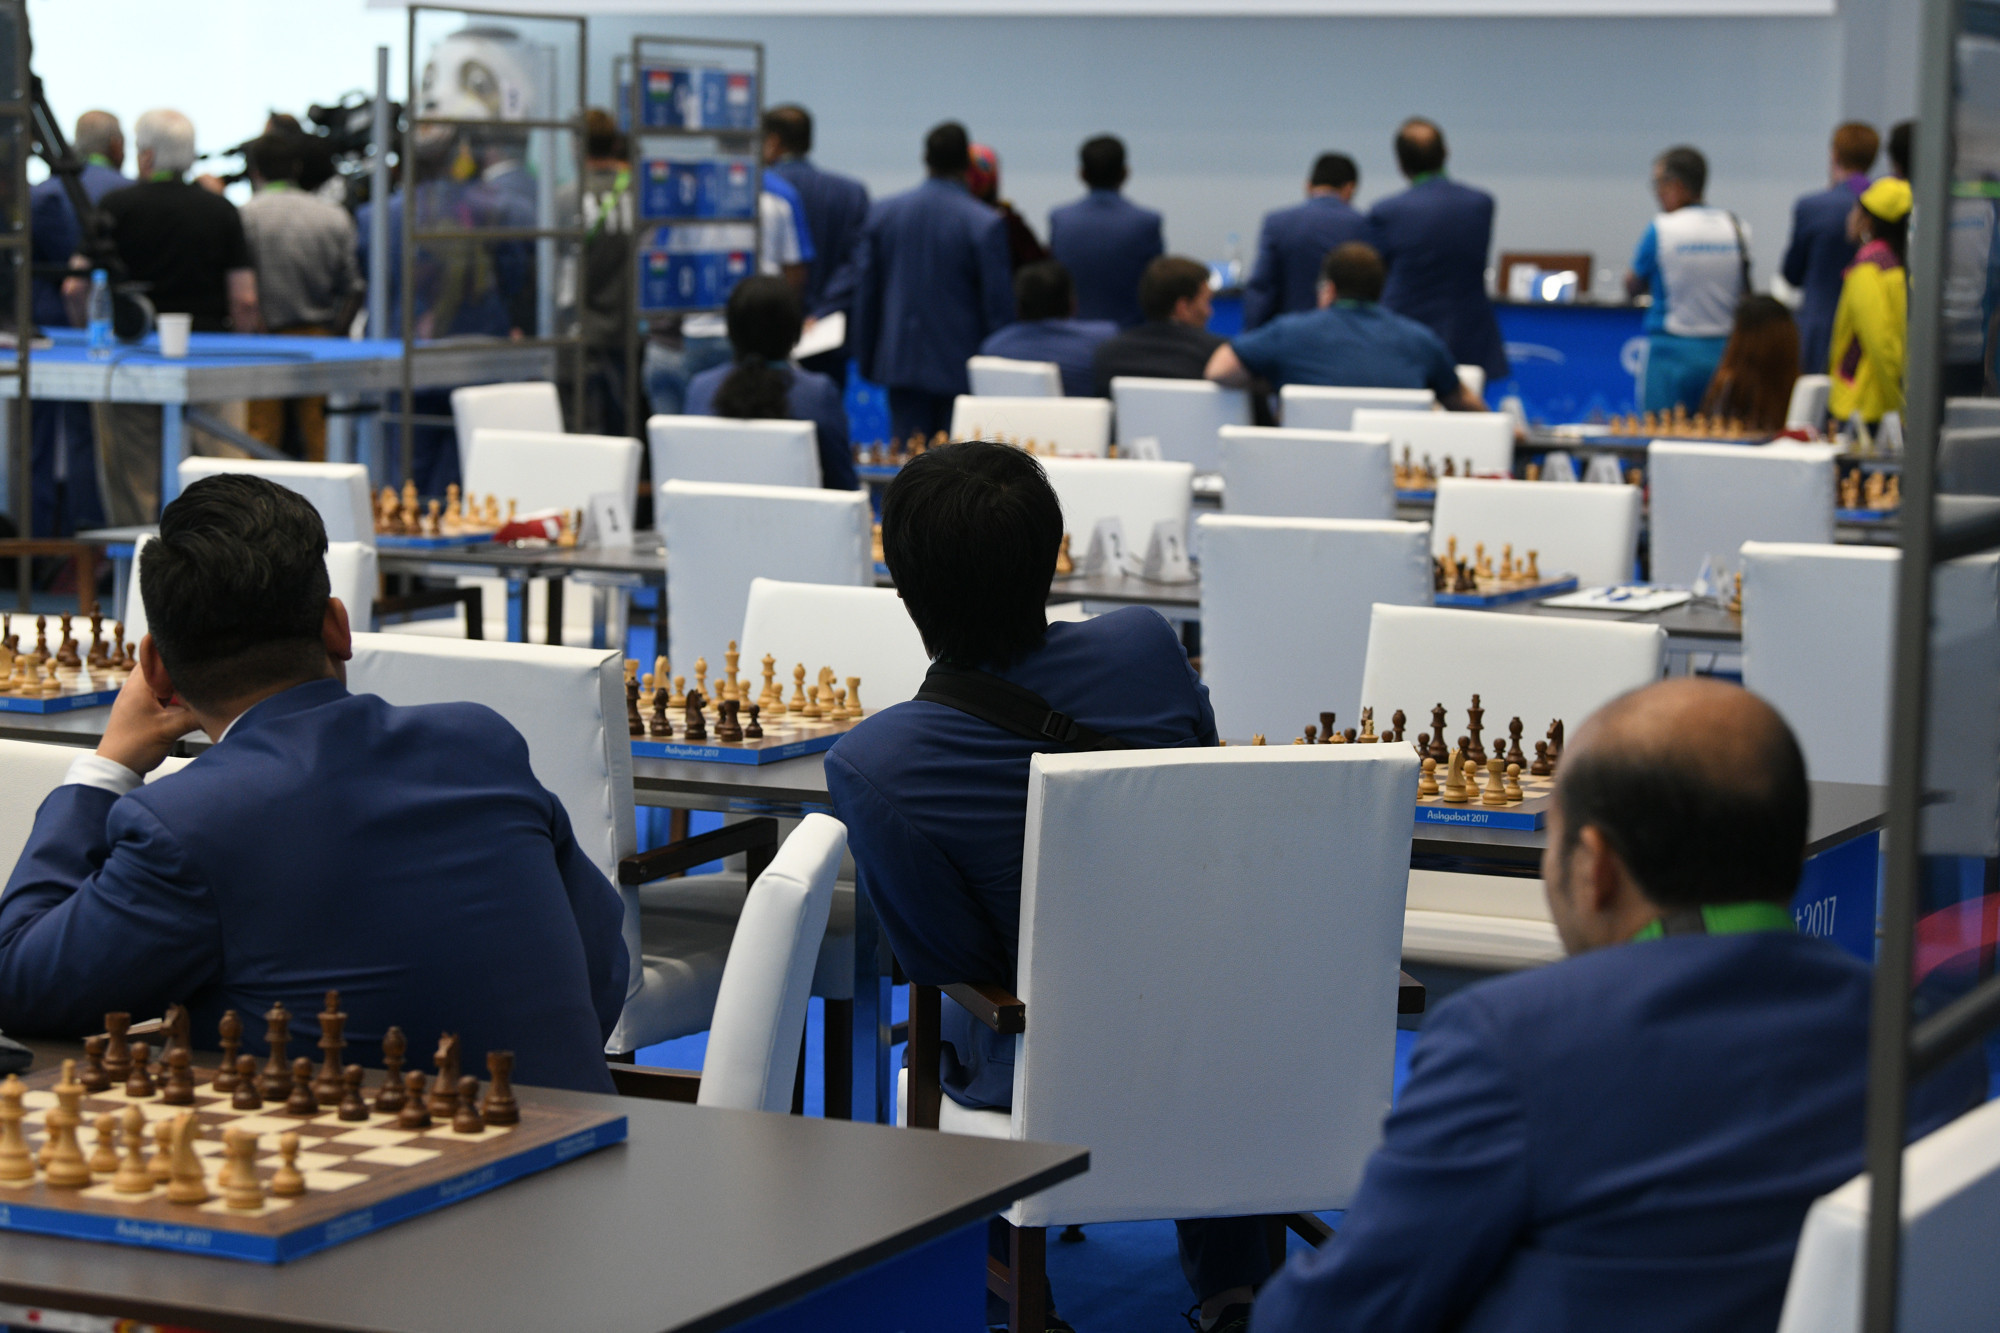 Chess competition concluded today ©Ashgabat 2017/Nassos Triantafyllou/Laurel Photo Services